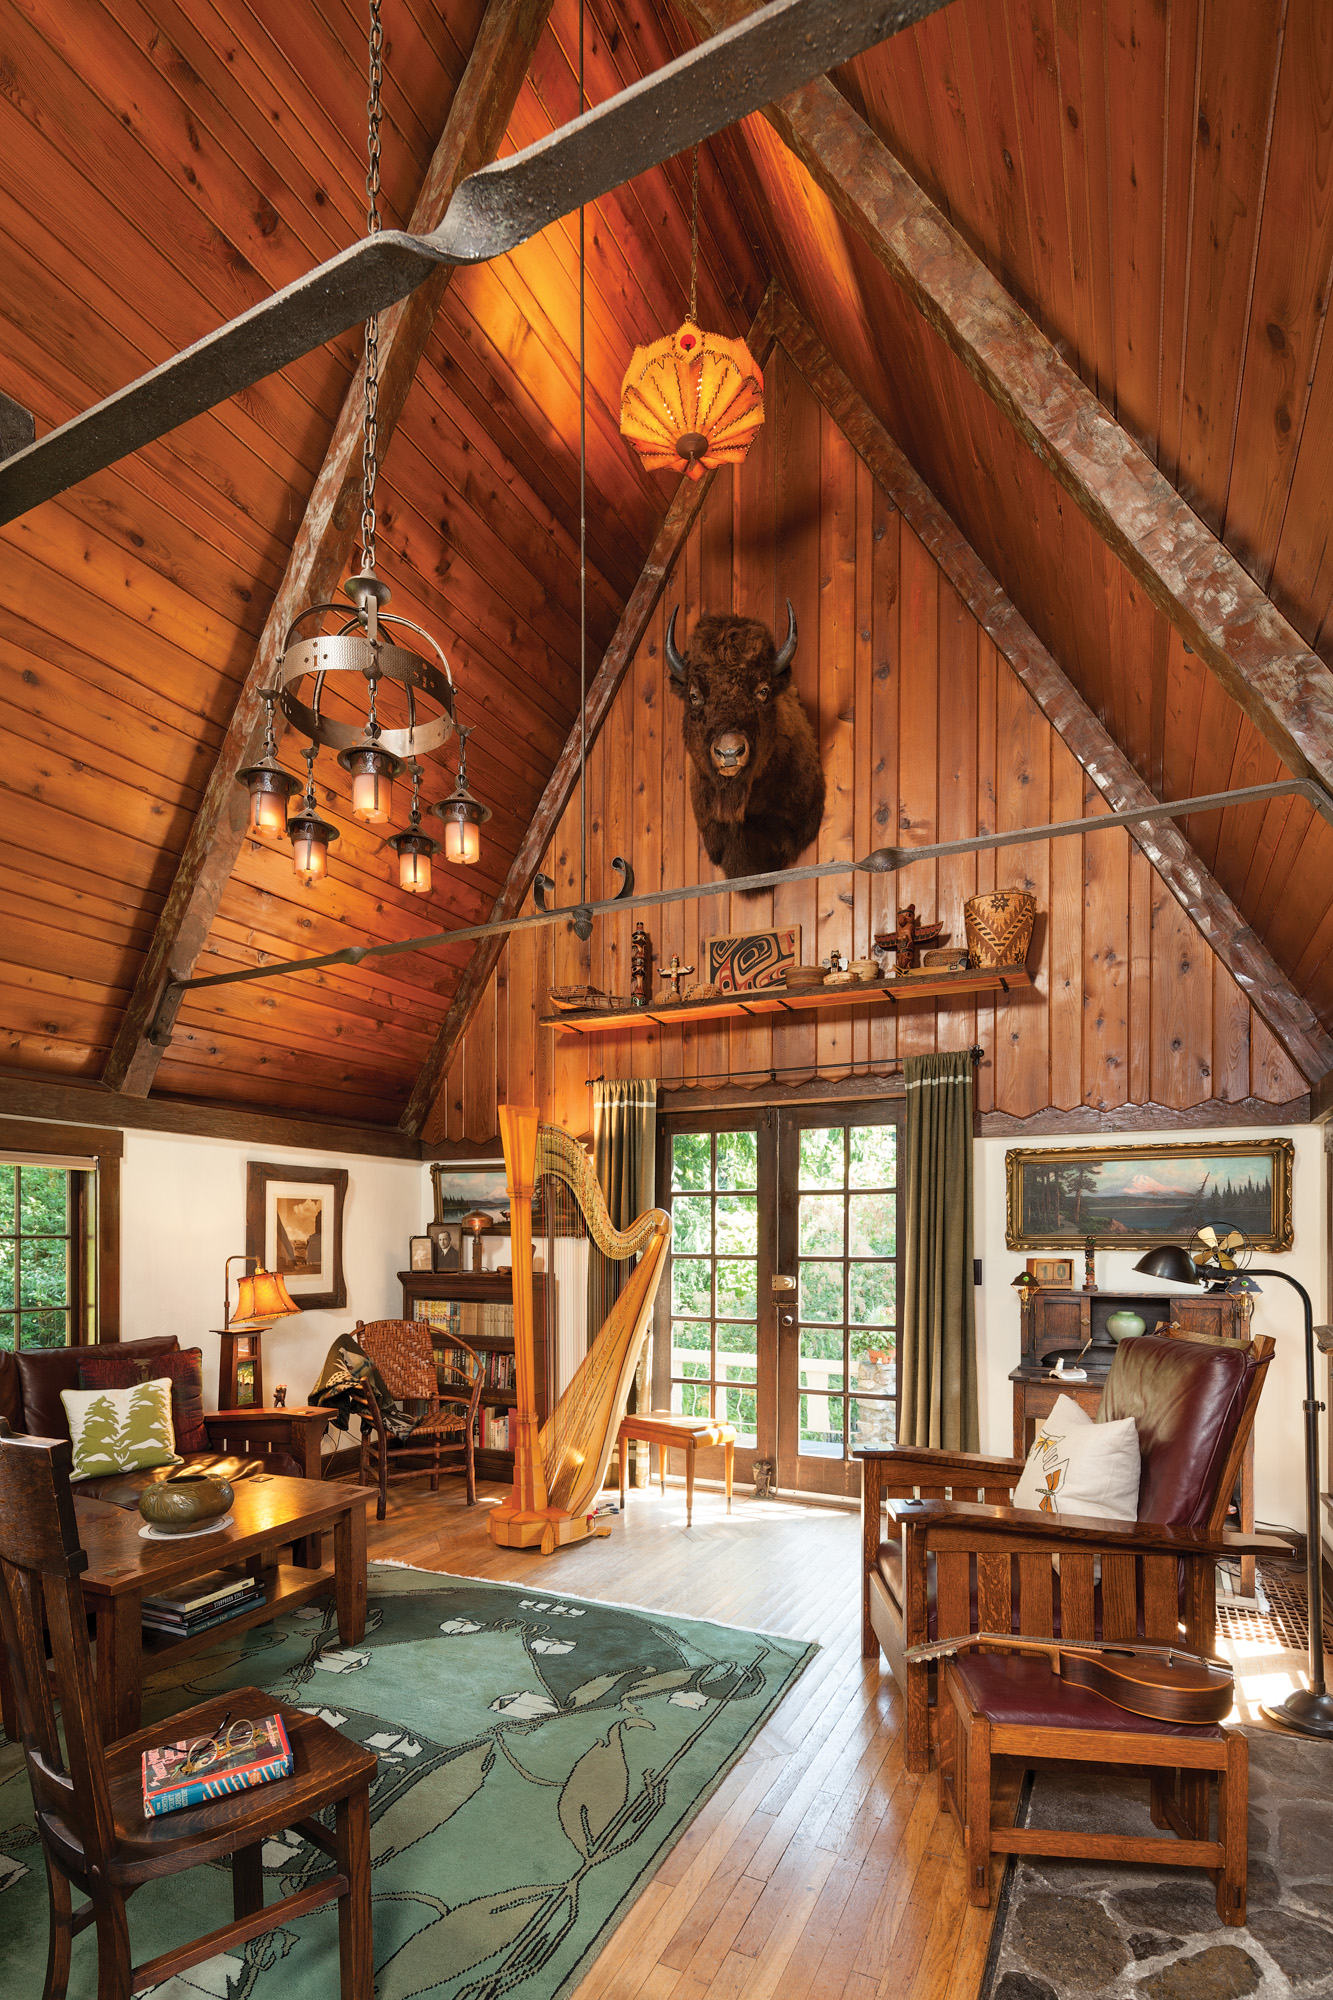 The 20-foot-tall great room fills the southern end of the home. A comfortable mix of furnishings includes a leather Morris chair and an original Gustav Stickley rocker.